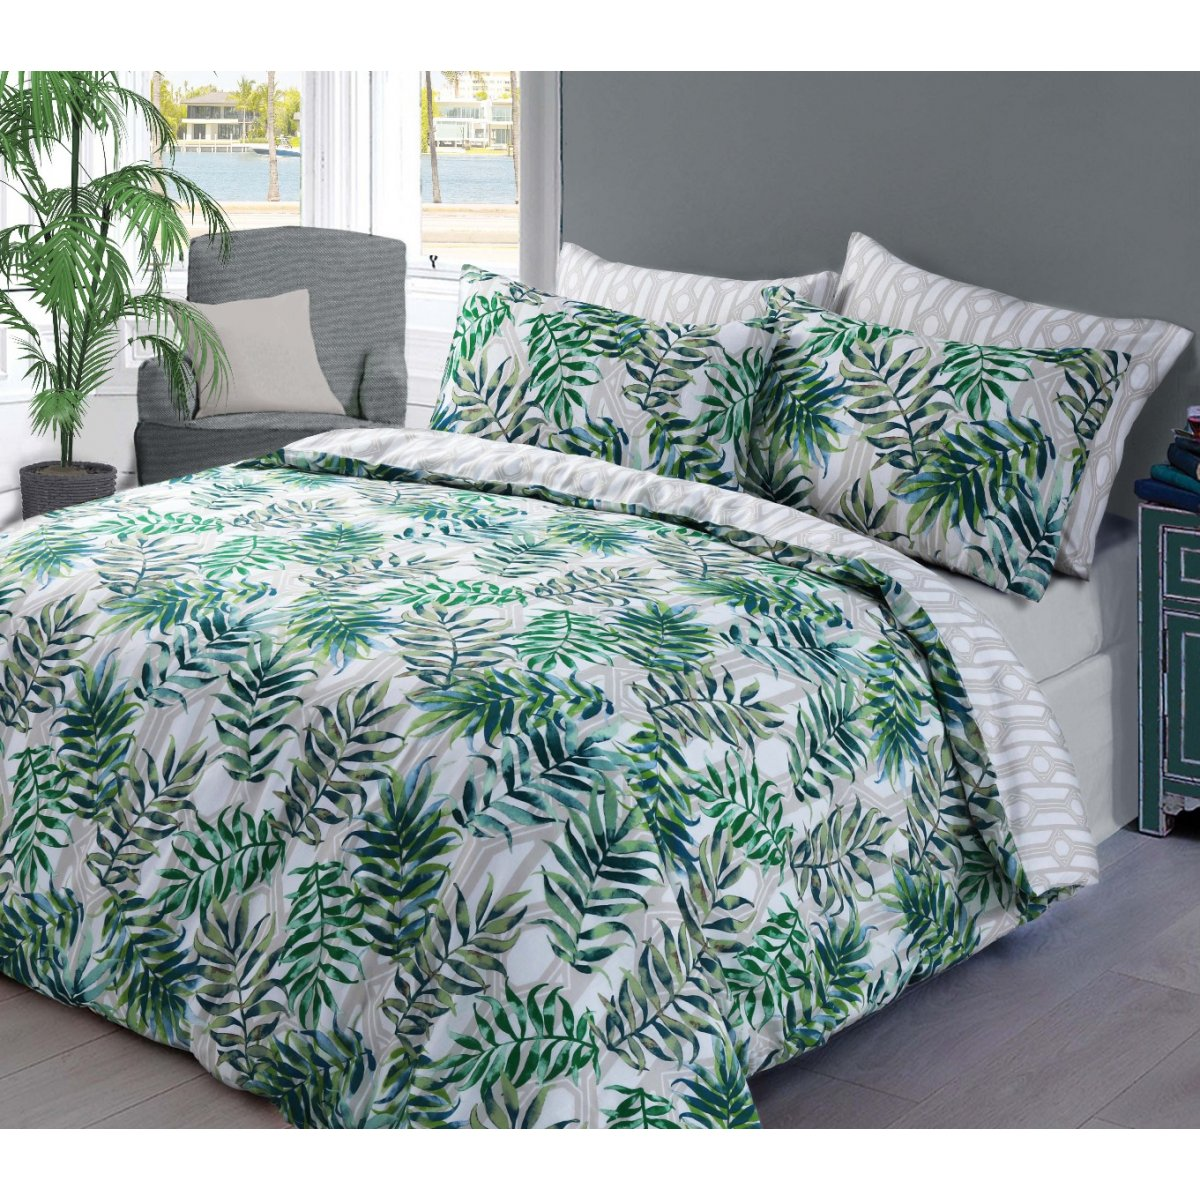 Palm Leaf Green Bedding - Reversible Duvet Cover and Pillowcase Set